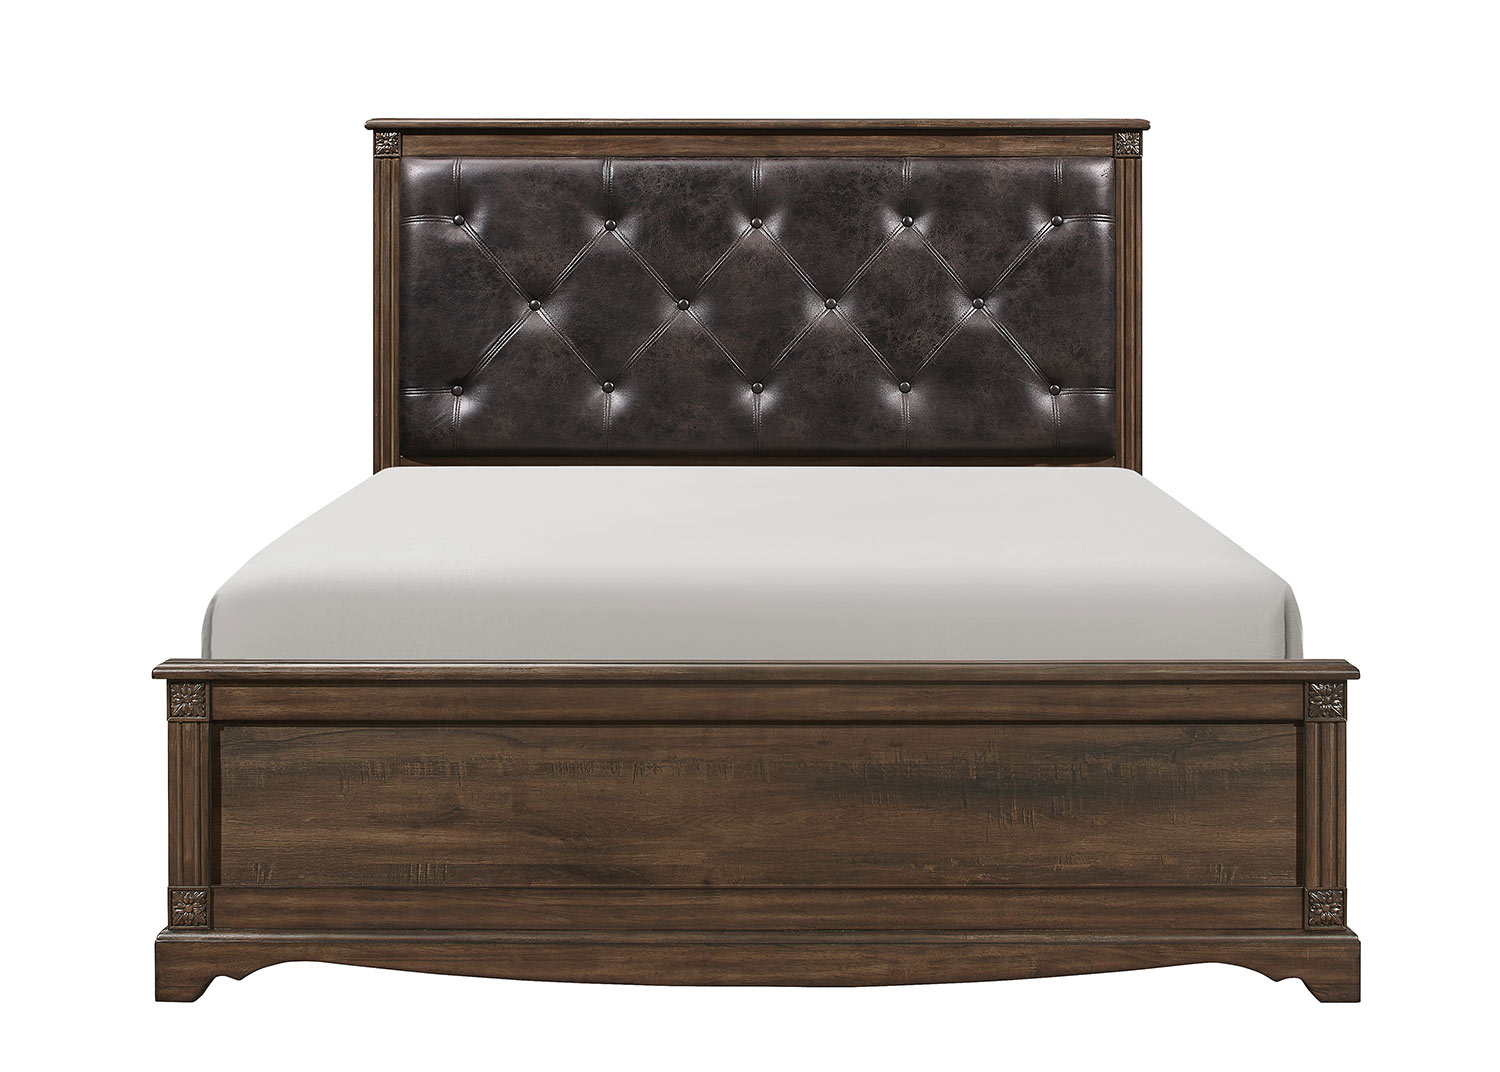 Homelegance Beaver Creek Bed - Rustic Brown